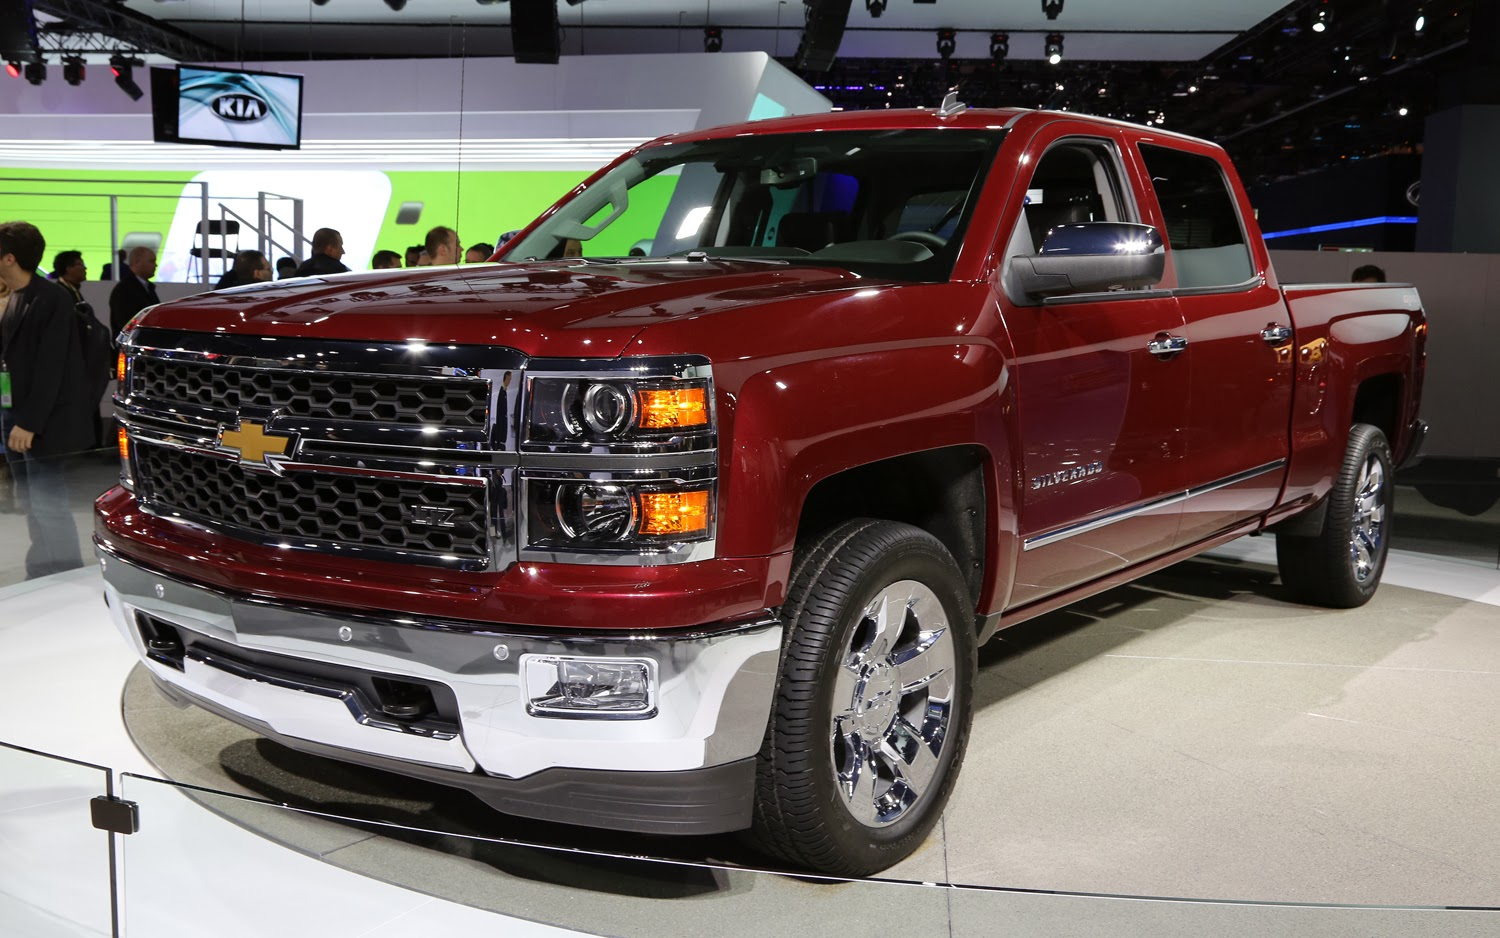 news cars new chevrolet silverado model year 2014. Black Bedroom Furniture Sets. Home Design Ideas